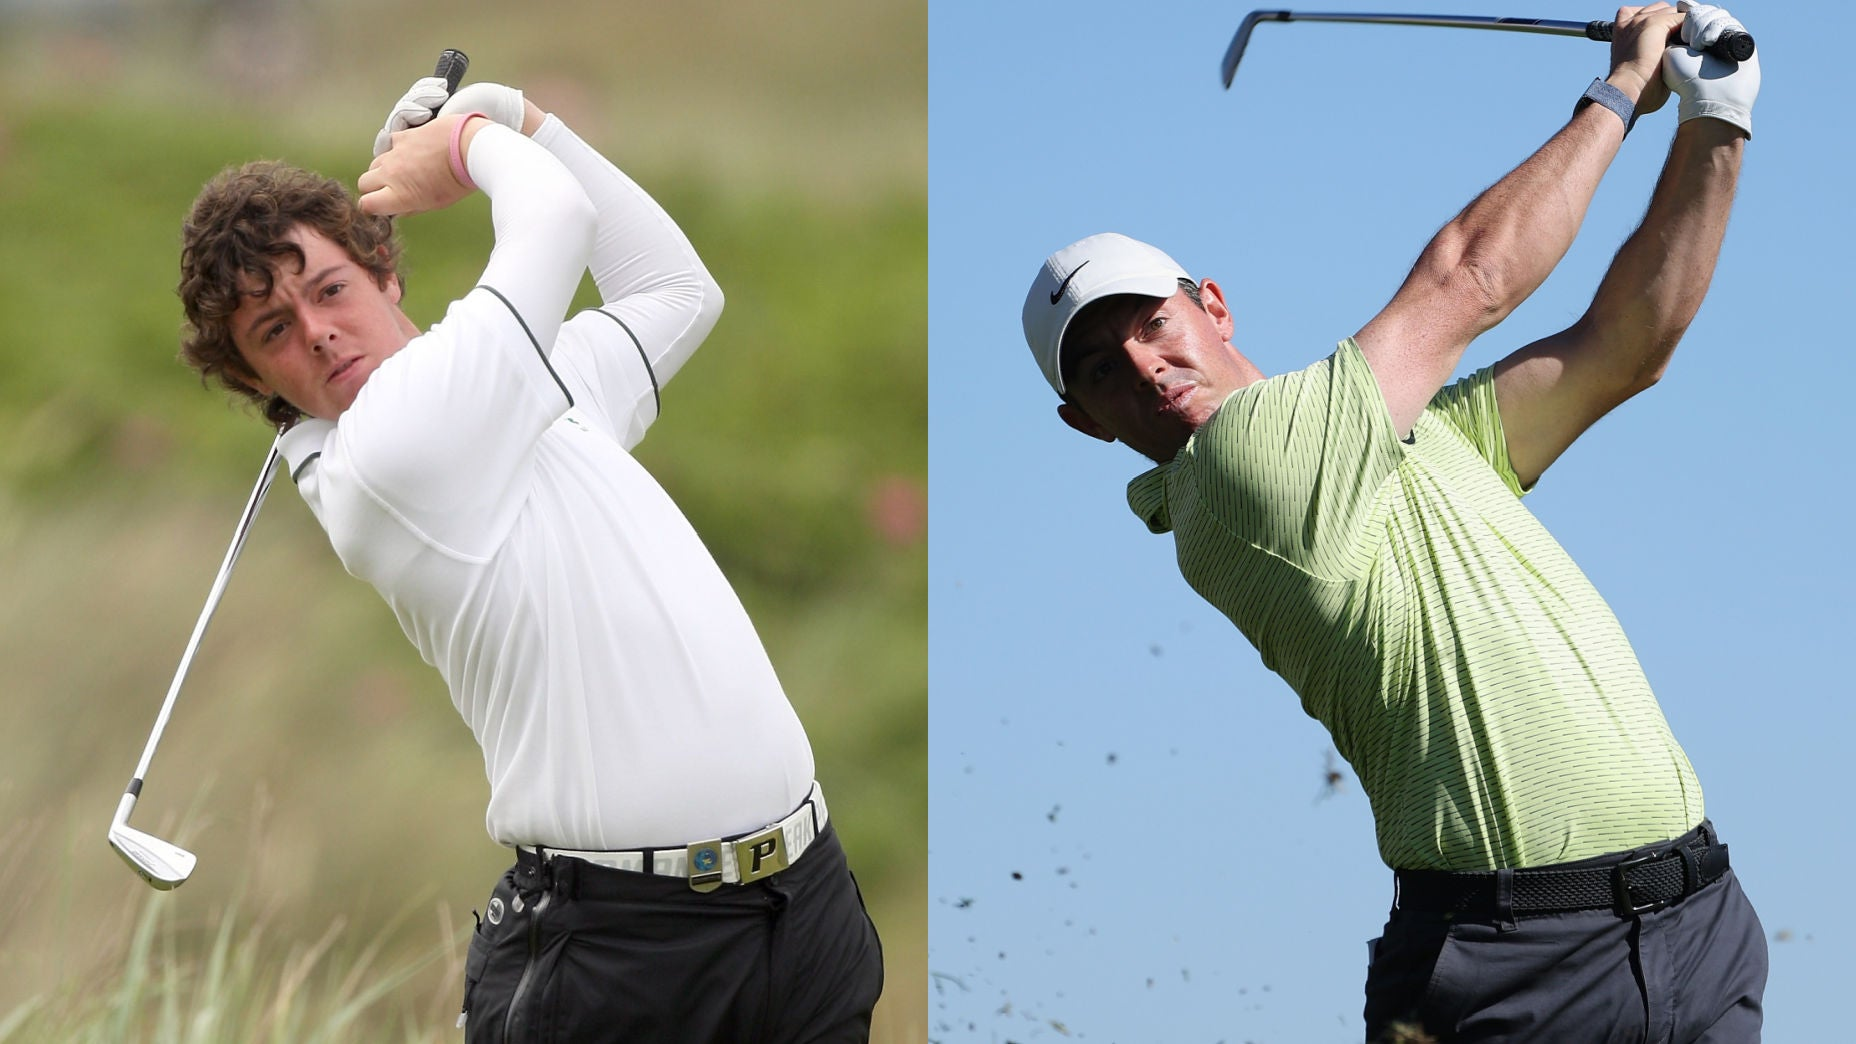 Two frames of Rory McIlroy swinging a golf club, the left in 2010 and the right in modern day